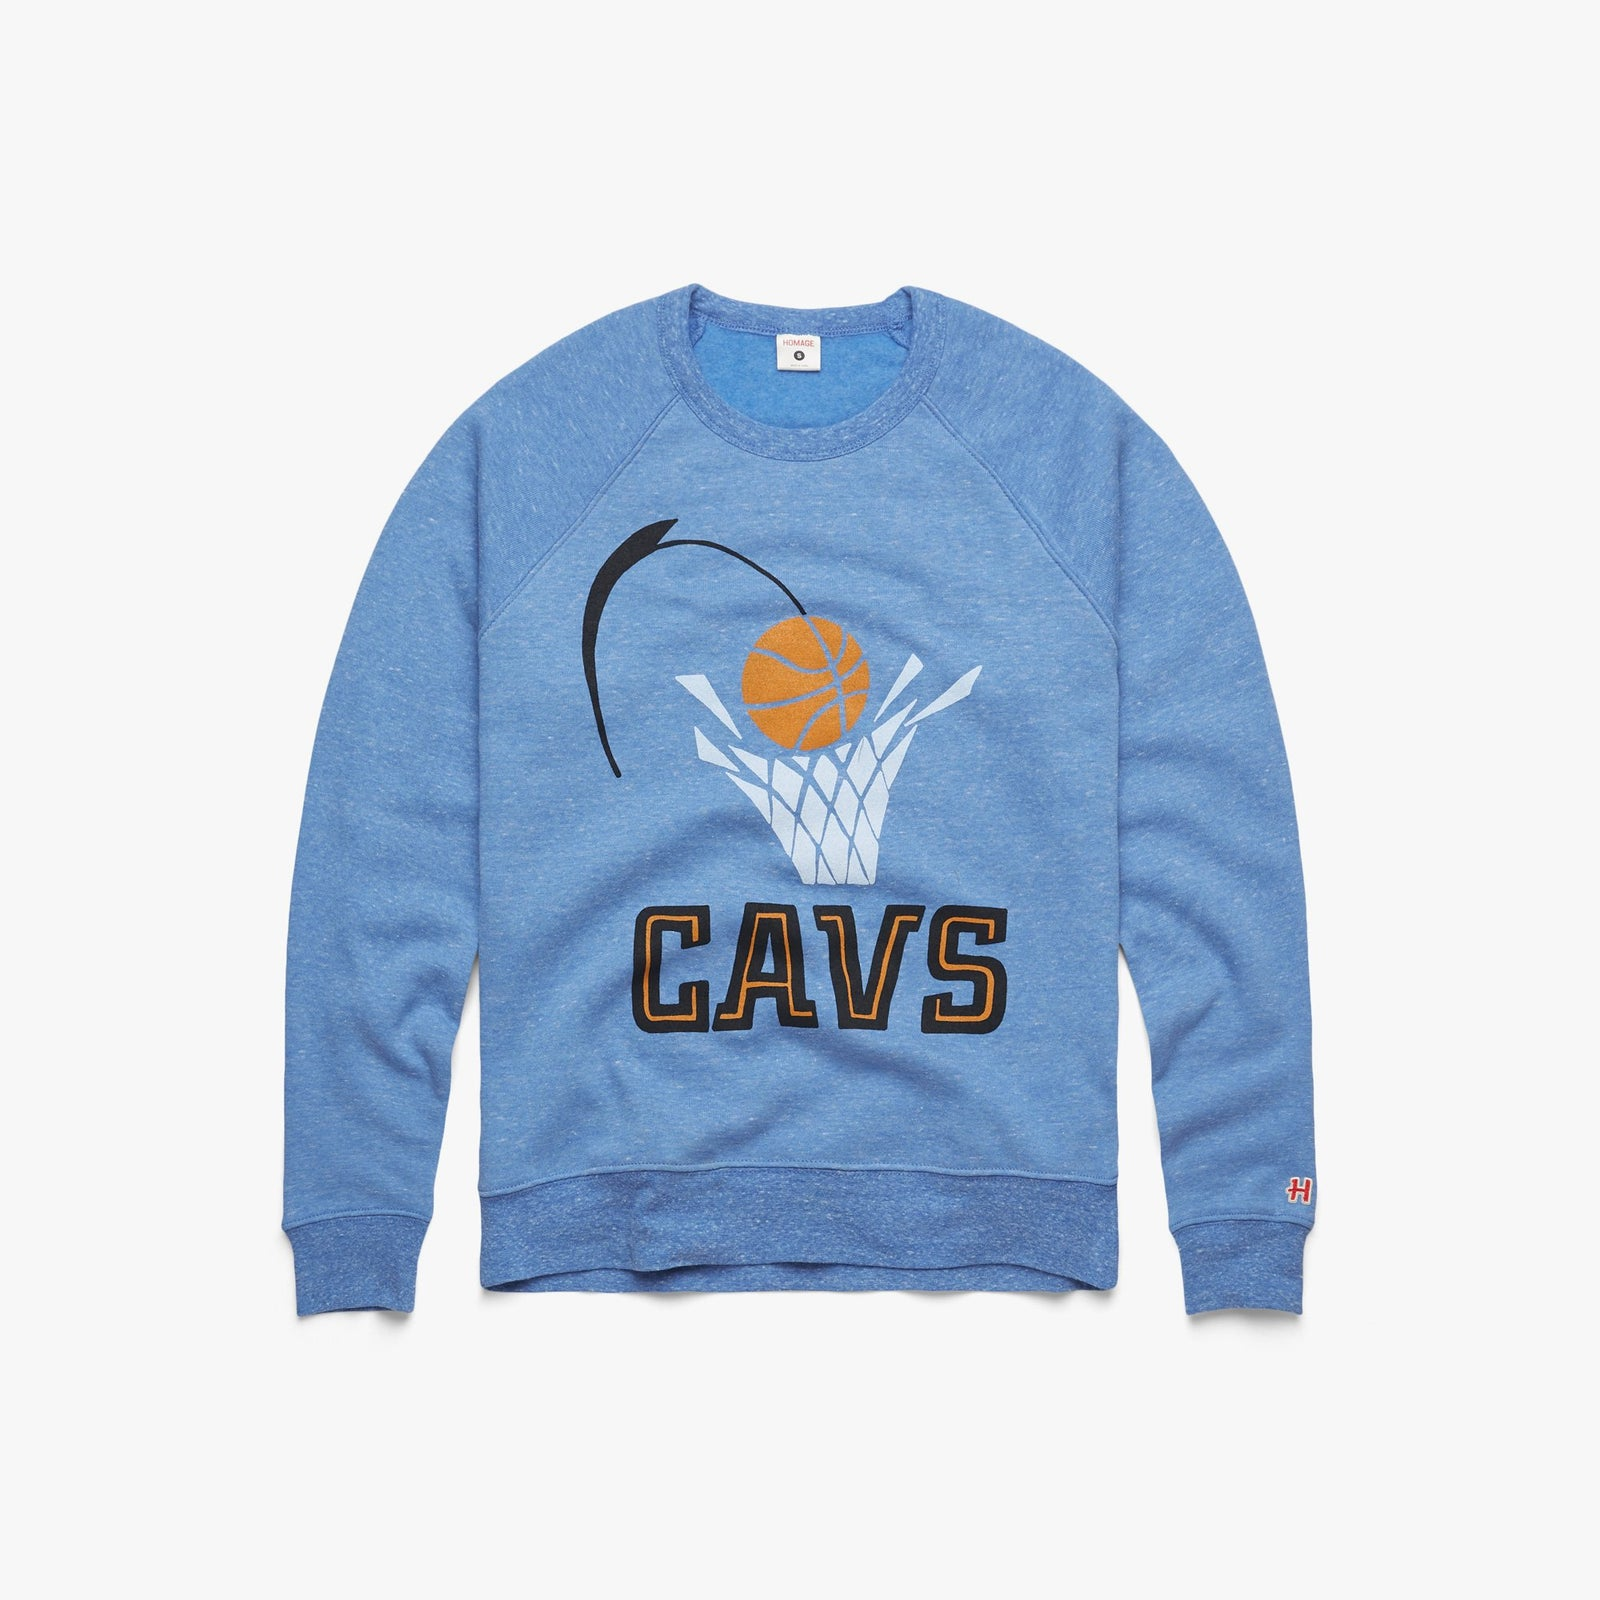 Women's Nothing But Net Cavs Crewneck